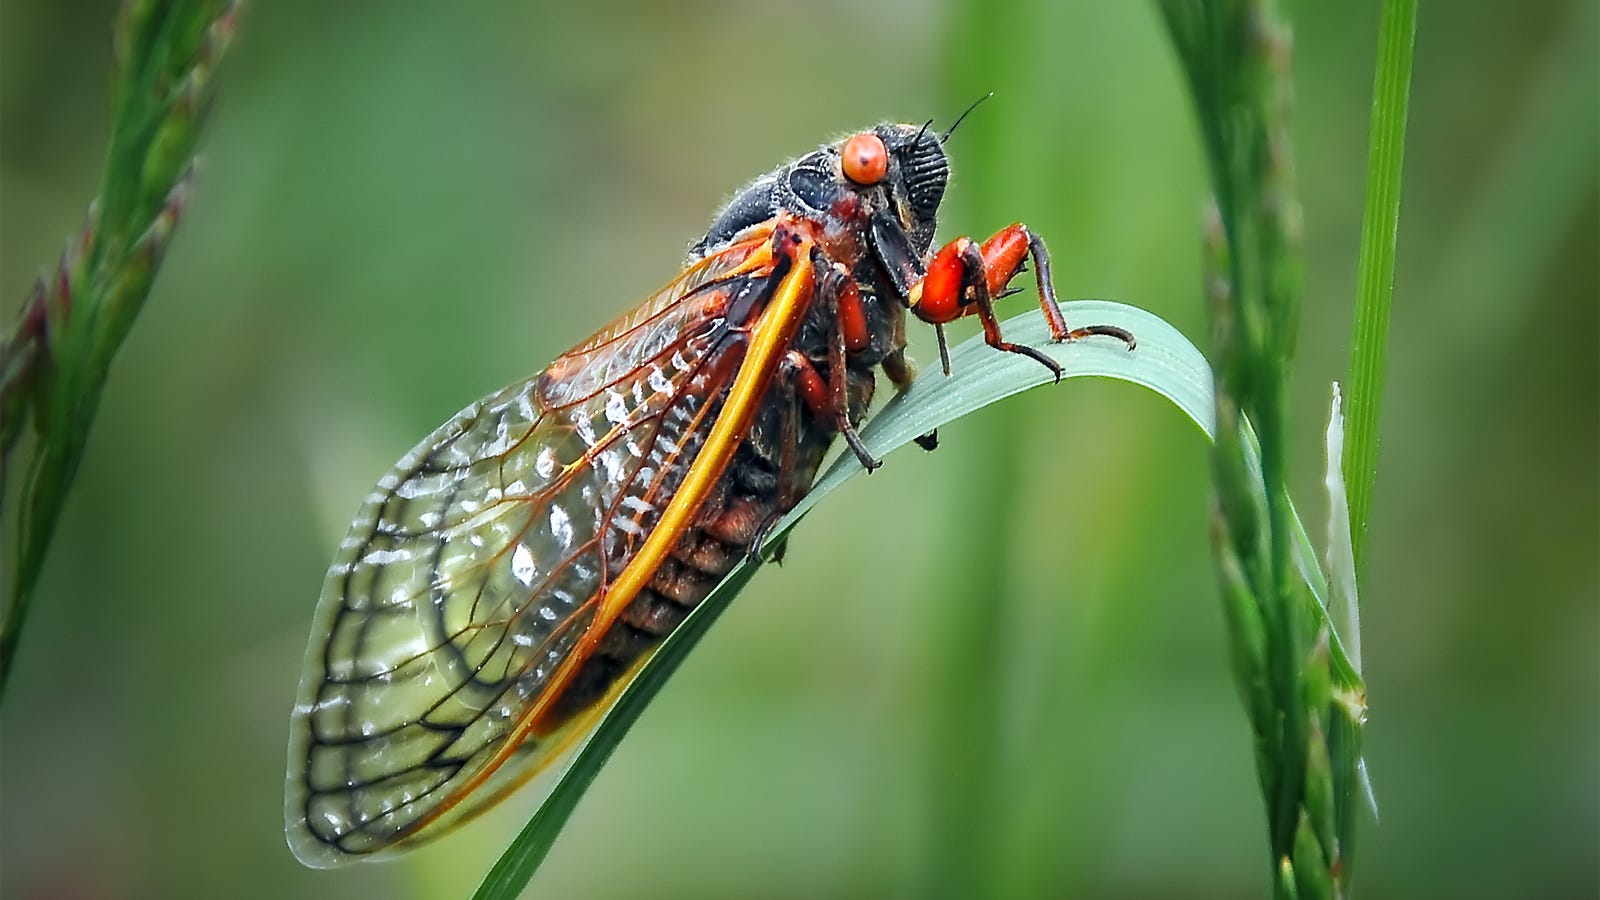 Cicadas are beginning to emerge as the latest creepy new food trend